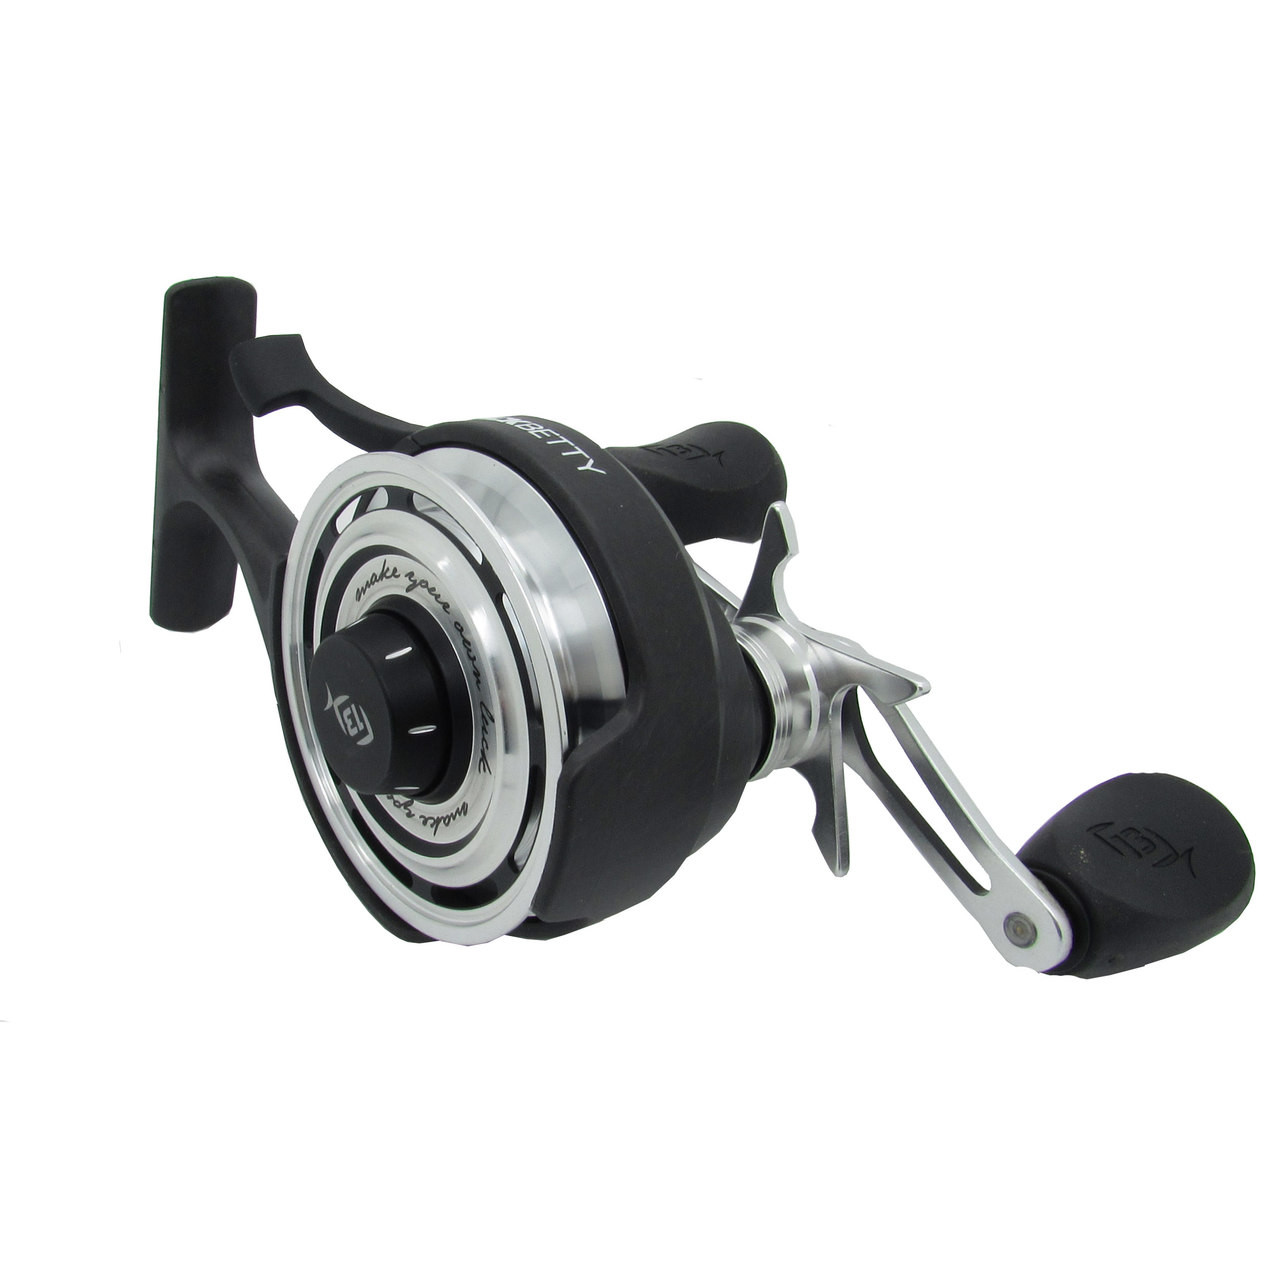 13 fishing freefall reel for 13 fishing freefall